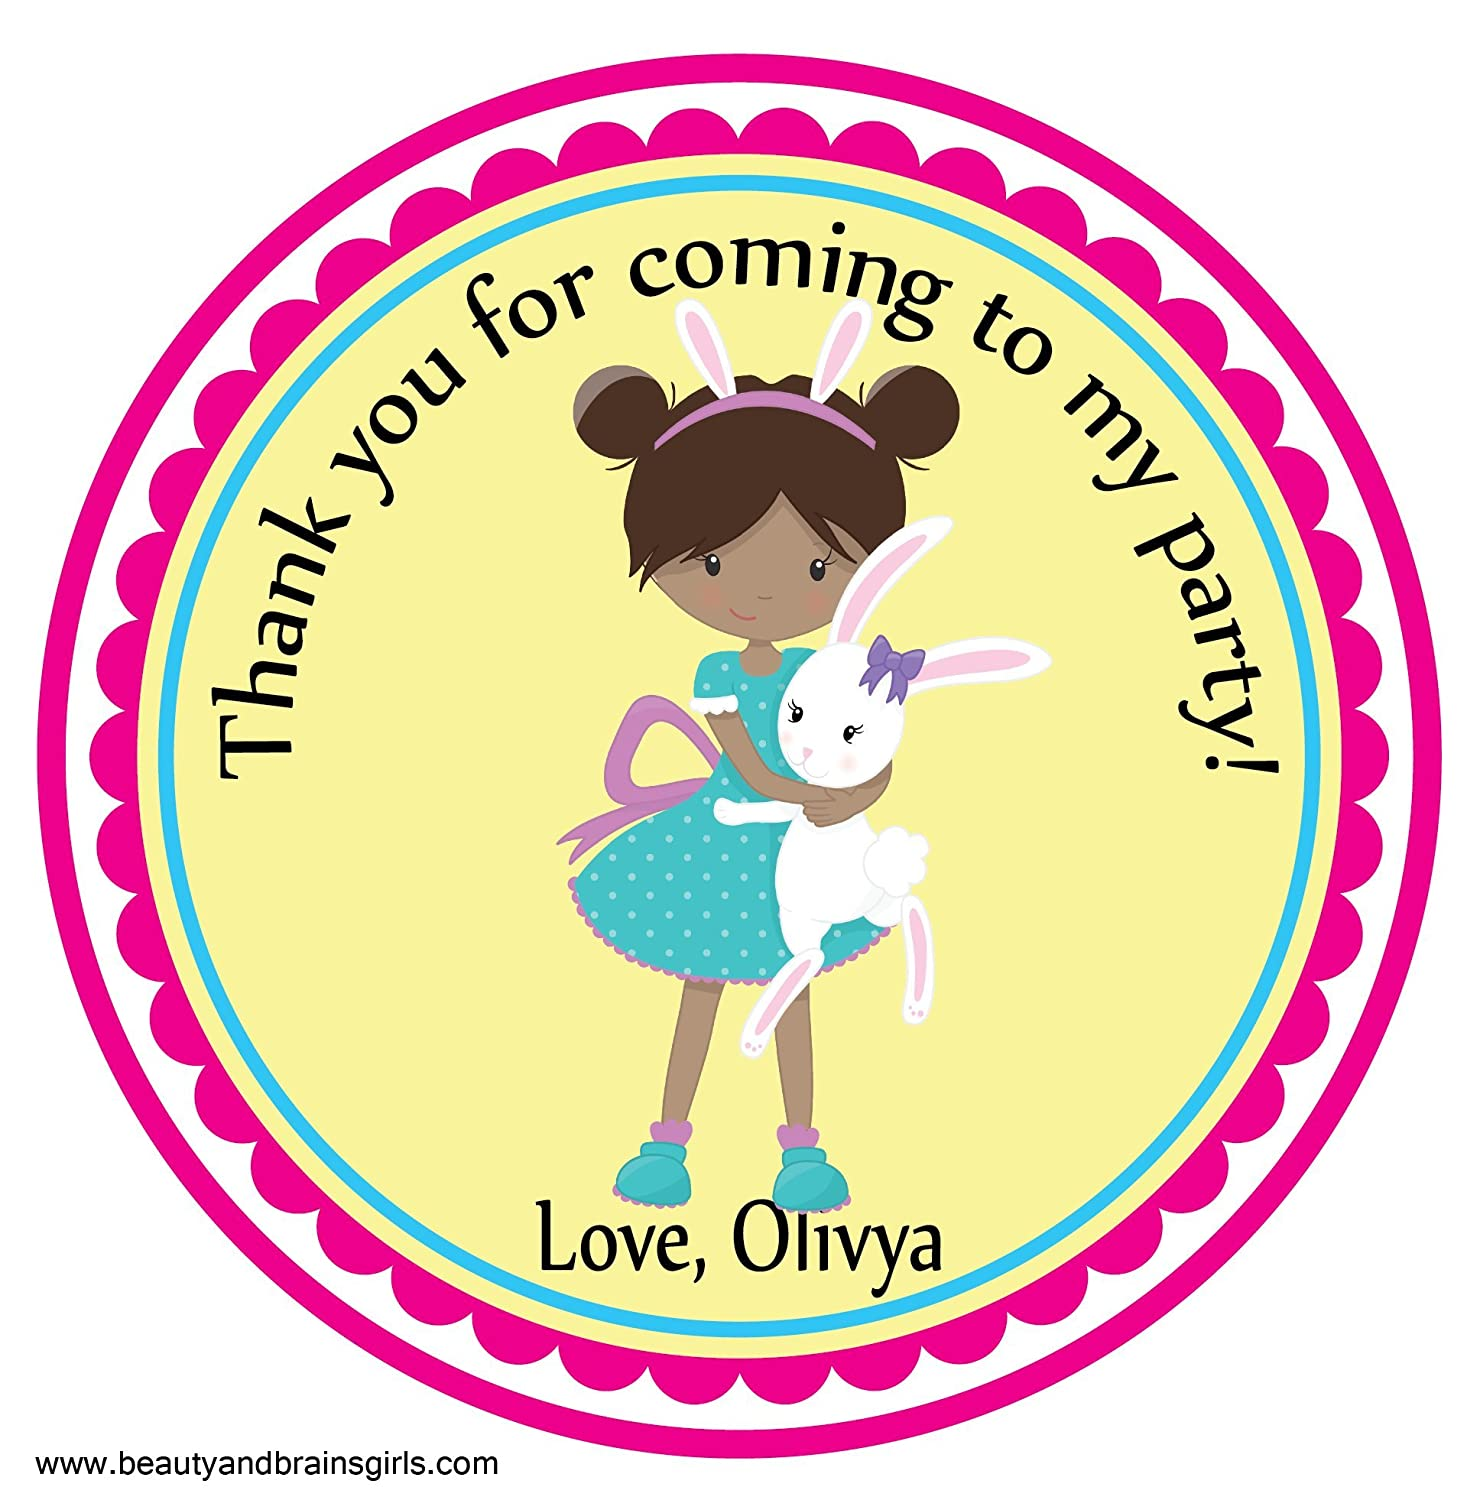 Easter bunny darker tone party easter party custom personalized stickers birthday party favors treat tag toppers 24 stickers popular size 2 5 inches